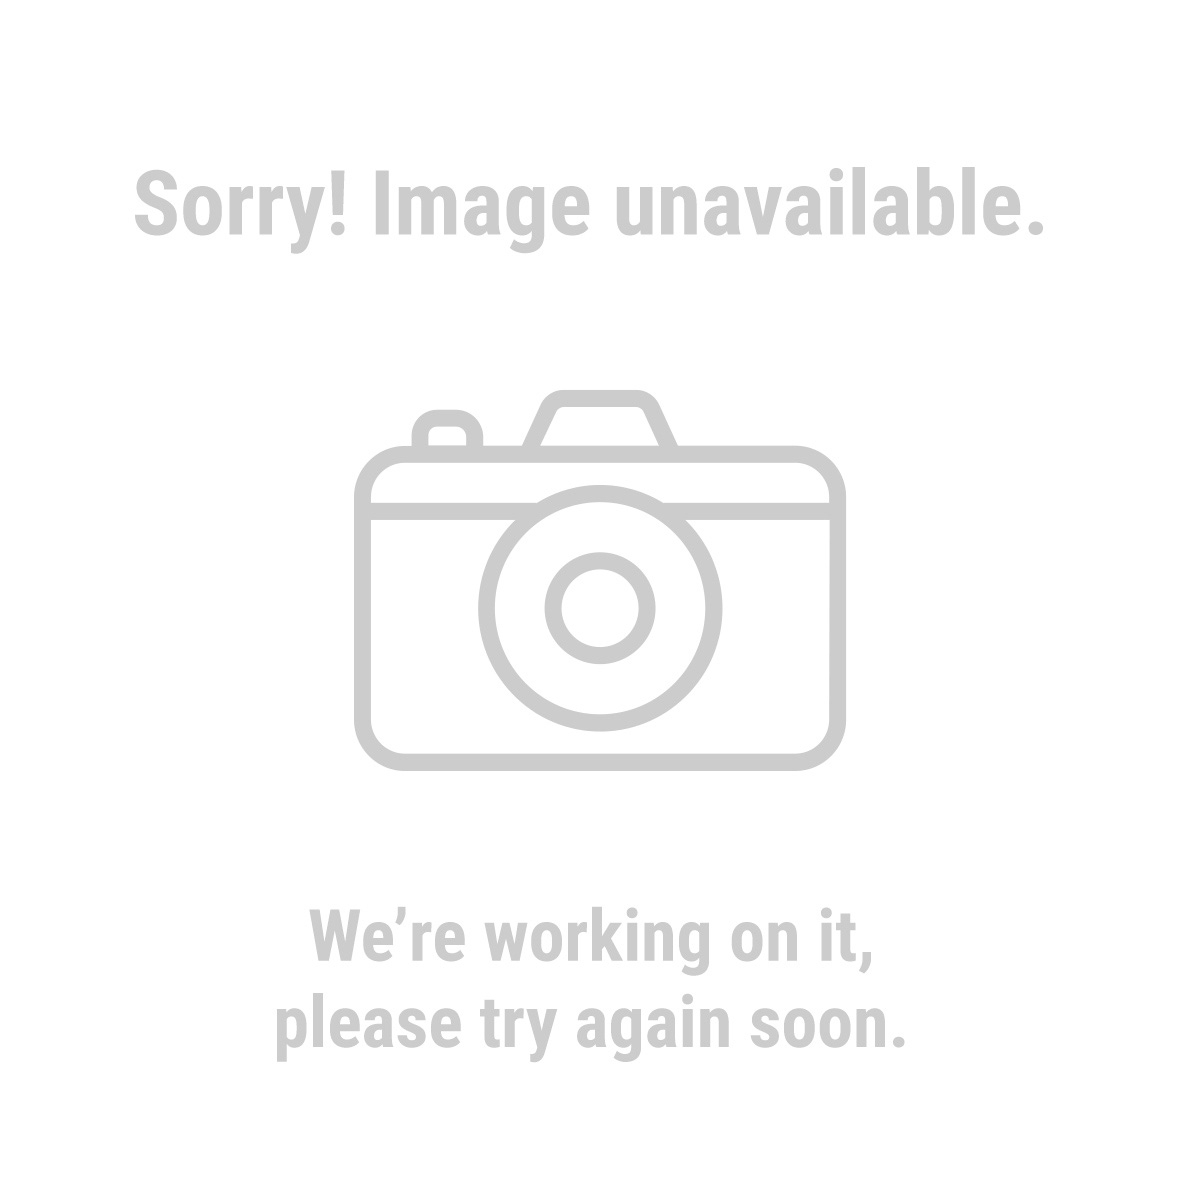 4 Ton Heavy Duty Portable Hydraulic Equipment Kit